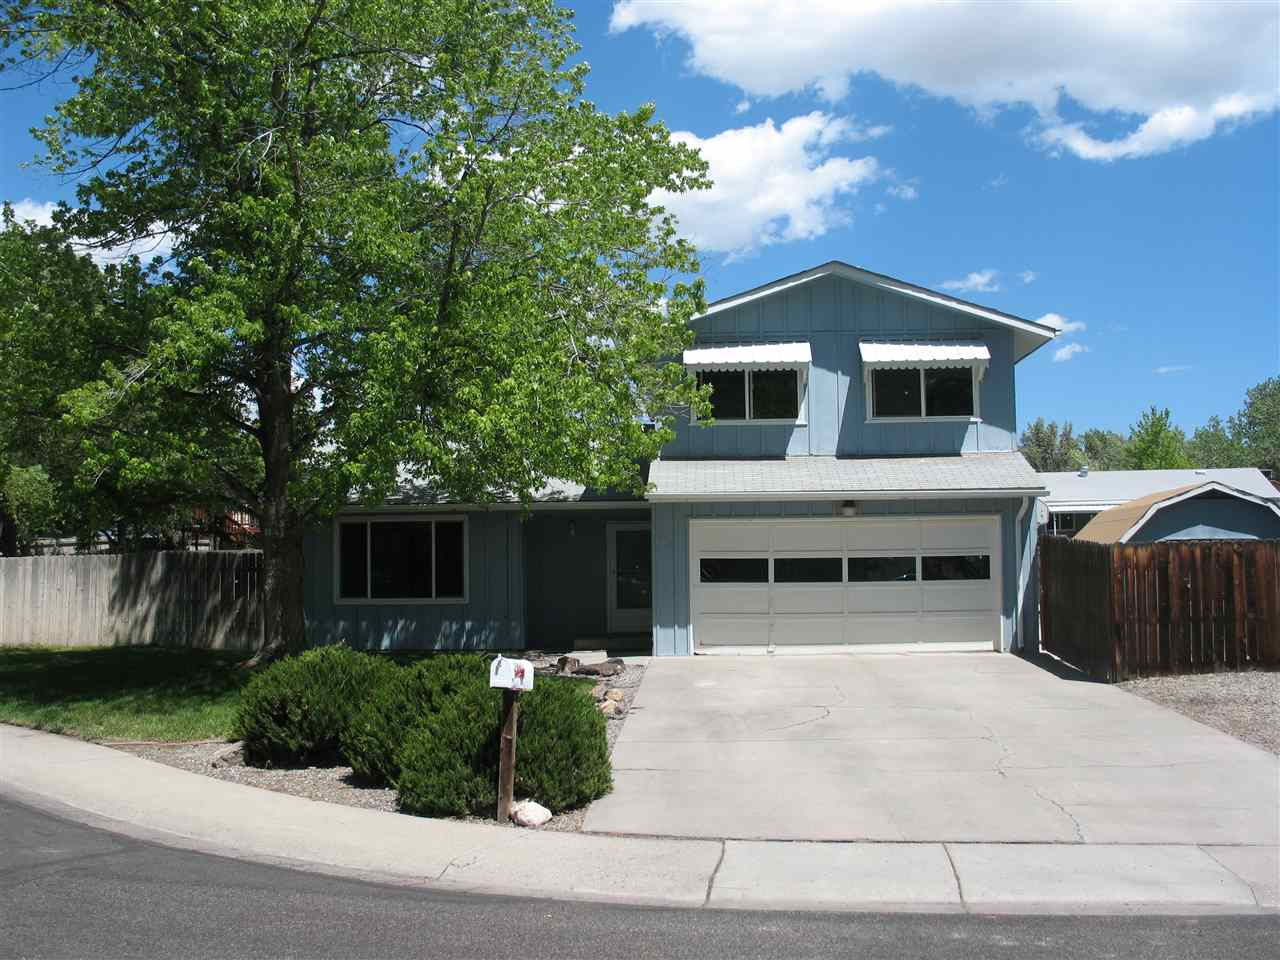 2882 F 1/4 Road, Grand Junction, CO 81504